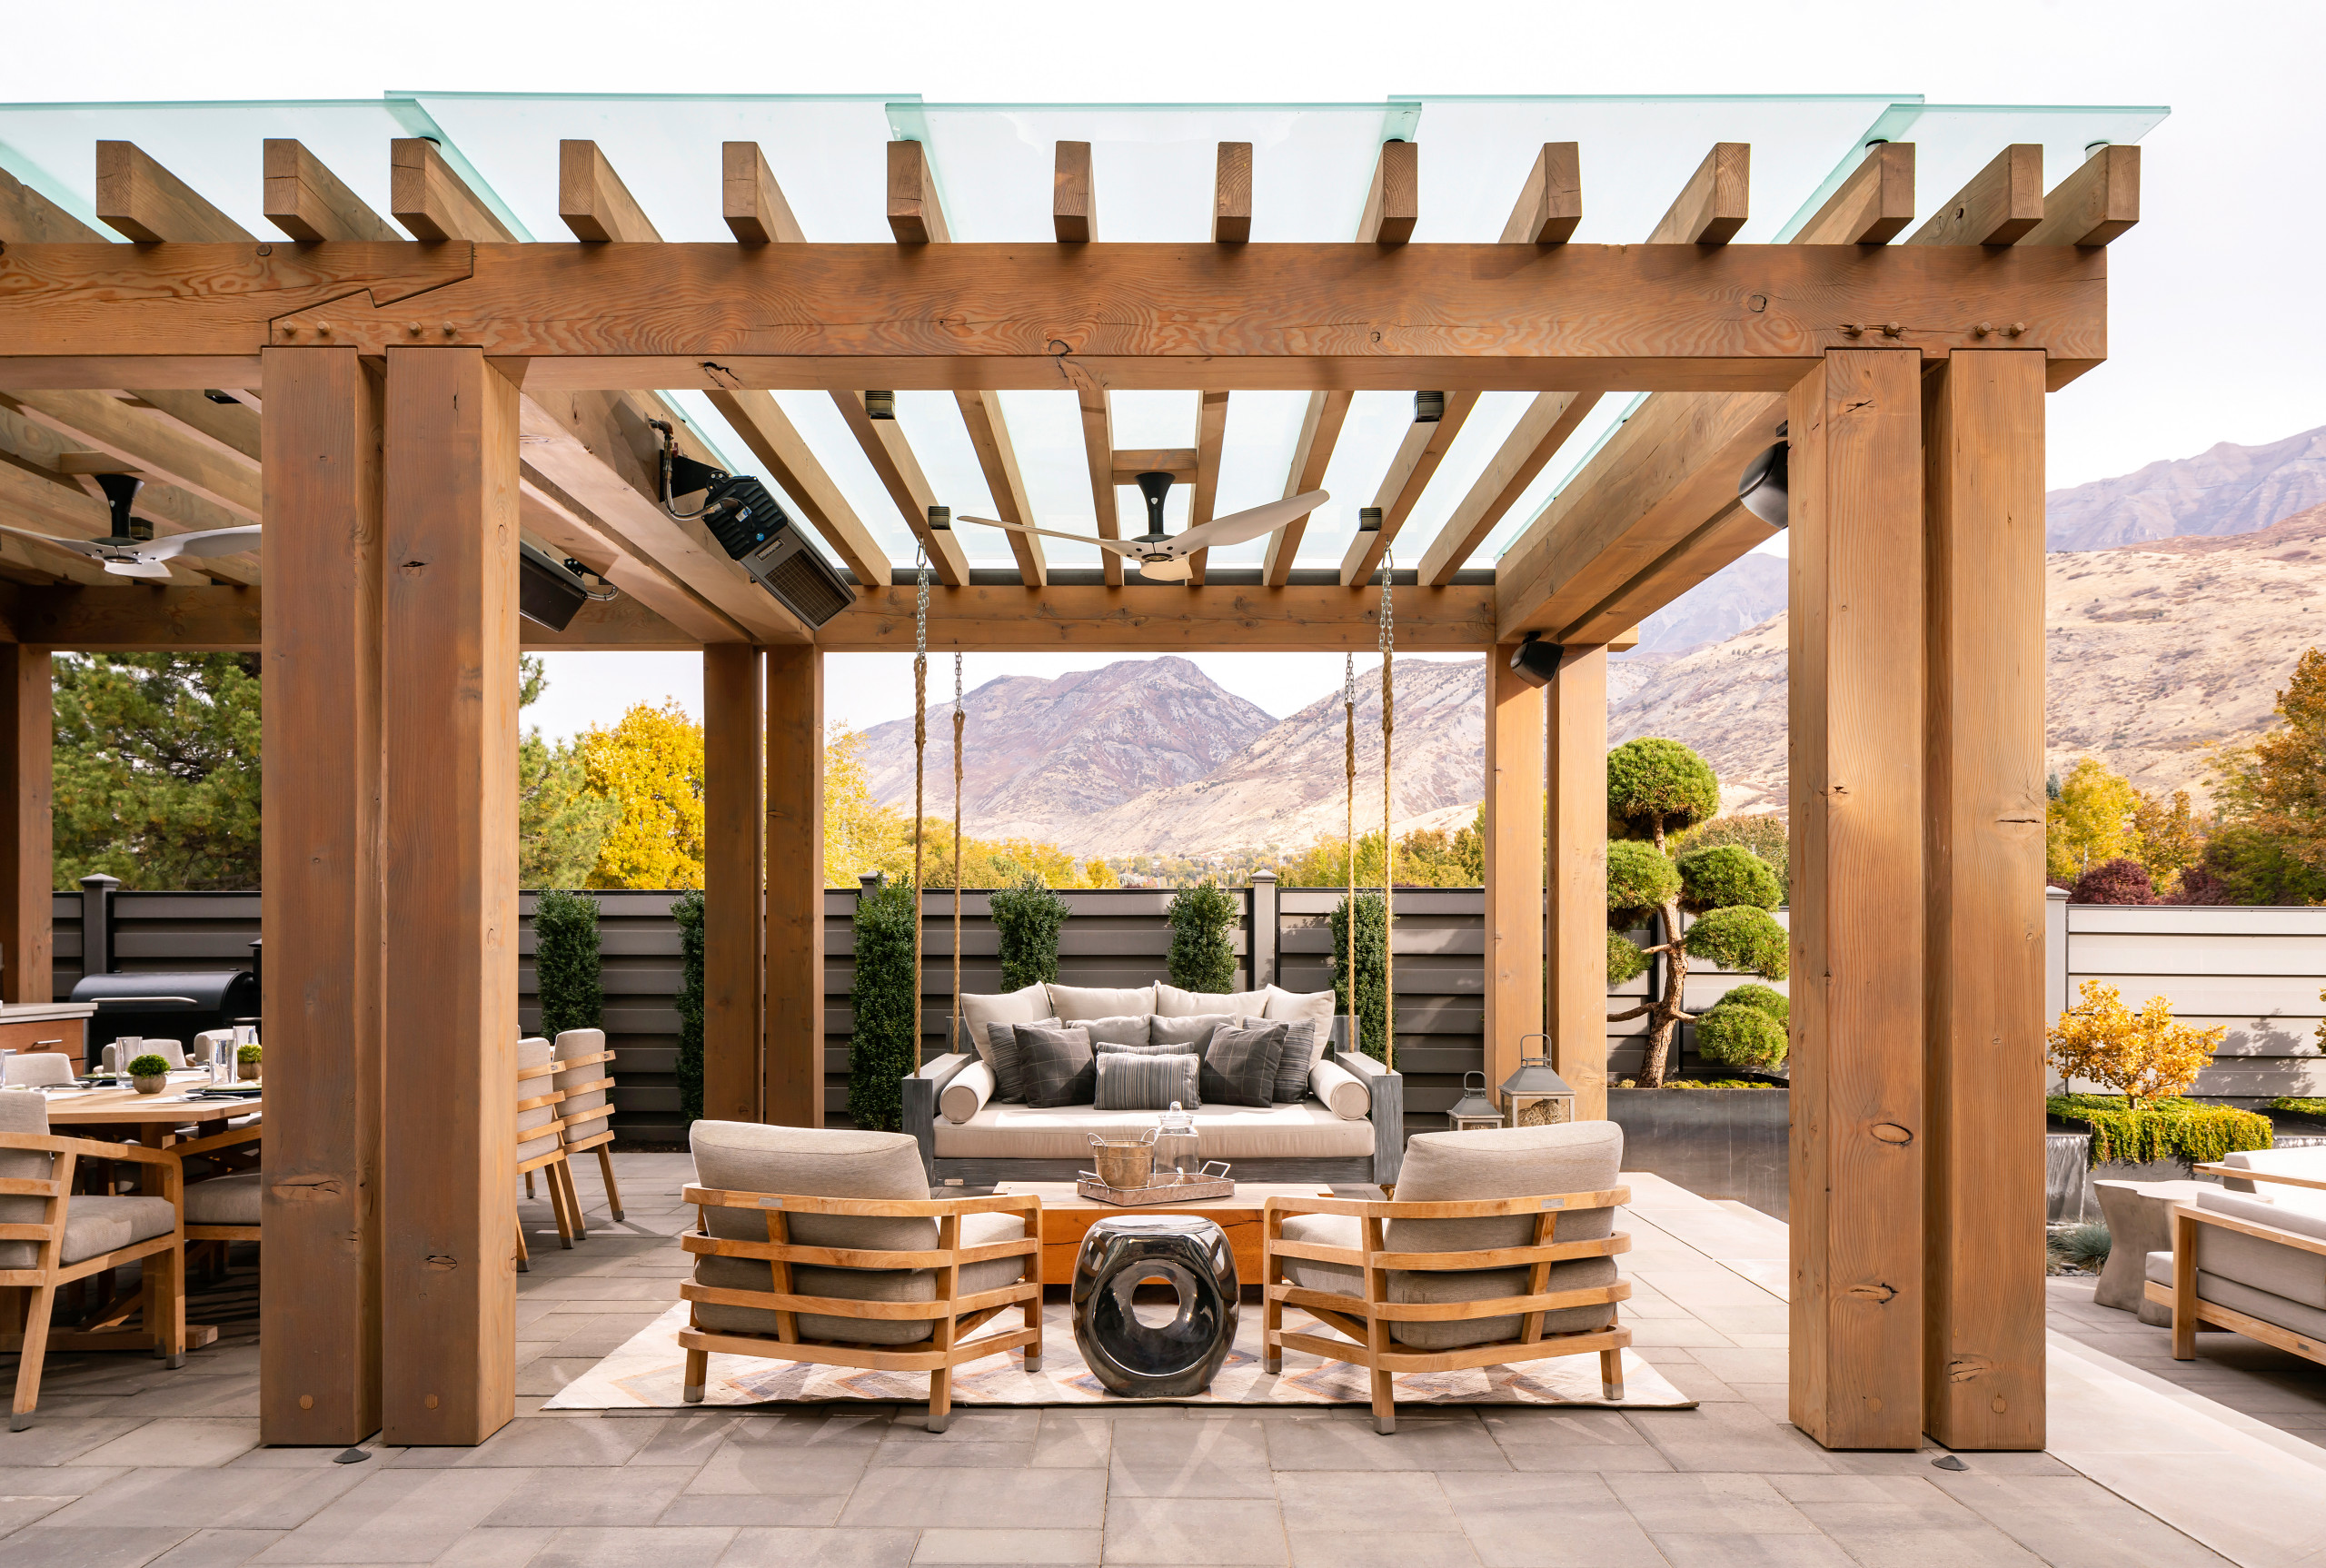 75 Beautiful Concrete Paver Patio Pictures Ideas November 2020 Houzz